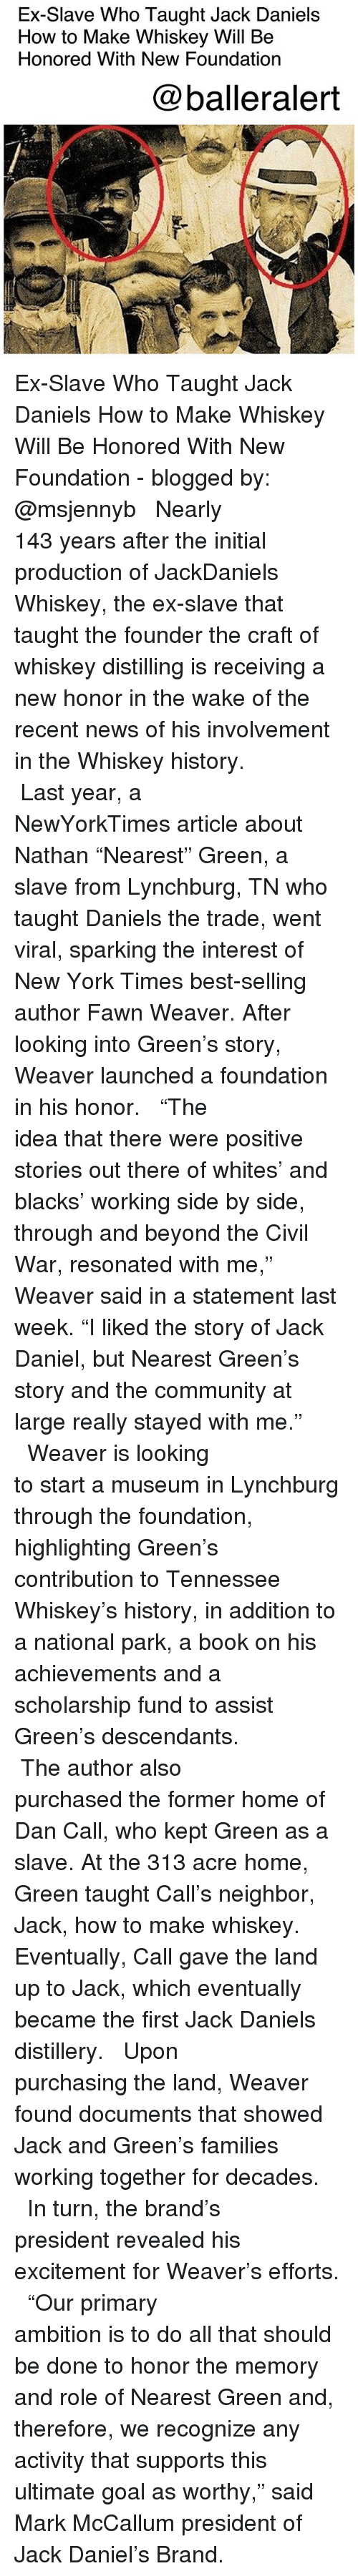 "Community, Memes, and New York: Ex-Slave Who Taught Jack Daniels  How to Make Whiskey Will Be  Honored With New Foundation  @balleralert Ex-Slave Who Taught Jack Daniels How to Make Whiskey Will Be Honored With New Foundation - blogged by: @msjennyb ⠀⠀⠀⠀⠀⠀⠀⠀⠀ ⠀⠀⠀⠀⠀⠀⠀⠀⠀ Nearly 143 years after the initial production of JackDaniels Whiskey, the ex-slave that taught the founder the craft of whiskey distilling is receiving a new honor in the wake of the recent news of his involvement in the Whiskey history. ⠀⠀⠀⠀⠀⠀⠀⠀⠀ ⠀⠀⠀⠀⠀⠀⠀⠀⠀ Last year, a NewYorkTimes article about Nathan ""Nearest"" Green, a slave from Lynchburg, TN who taught Daniels the trade, went viral, sparking the interest of New York Times best-selling author Fawn Weaver. After looking into Green's story, Weaver launched a foundation in his honor. ⠀⠀⠀⠀⠀⠀⠀⠀⠀ ⠀⠀⠀⠀⠀⠀⠀⠀⠀ ""The idea that there were positive stories out there of whites' and blacks' working side by side, through and beyond the Civil War, resonated with me,"" Weaver said in a statement last week. ""I liked the story of Jack Daniel, but Nearest Green's story and the community at large really stayed with me."" ⠀⠀⠀⠀⠀⠀⠀⠀⠀ ⠀⠀⠀⠀⠀⠀⠀⠀⠀ Weaver is looking to start a museum in Lynchburg through the foundation, highlighting Green's contribution to Tennessee Whiskey's history, in addition to a national park, a book on his achievements and a scholarship fund to assist Green's descendants. ⠀⠀⠀⠀⠀⠀⠀⠀⠀ ⠀⠀⠀⠀⠀⠀⠀⠀⠀ The author also purchased the former home of Dan Call, who kept Green as a slave. At the 313 acre home, Green taught Call's neighbor, Jack, how to make whiskey. Eventually, Call gave the land up to Jack, which eventually became the first Jack Daniels distillery. ⠀⠀⠀⠀⠀⠀⠀⠀⠀ ⠀⠀⠀⠀⠀⠀⠀⠀⠀ Upon purchasing the land, Weaver found documents that showed Jack and Green's families working together for decades. ⠀⠀⠀⠀⠀⠀⠀⠀⠀ ⠀⠀⠀⠀⠀⠀⠀⠀⠀ In turn, the brand's president revealed his excitement for Weaver's efforts. ⠀⠀⠀⠀⠀⠀⠀⠀⠀ ⠀⠀⠀⠀⠀⠀⠀⠀⠀ ""Our primary ambition is to do all that should be done to honor the memory and role of Nearest Green and, therefore, we recognize any activity that supports this ultimate goal as worthy,"" said Mark McCallum president of Jack Daniel's Brand."